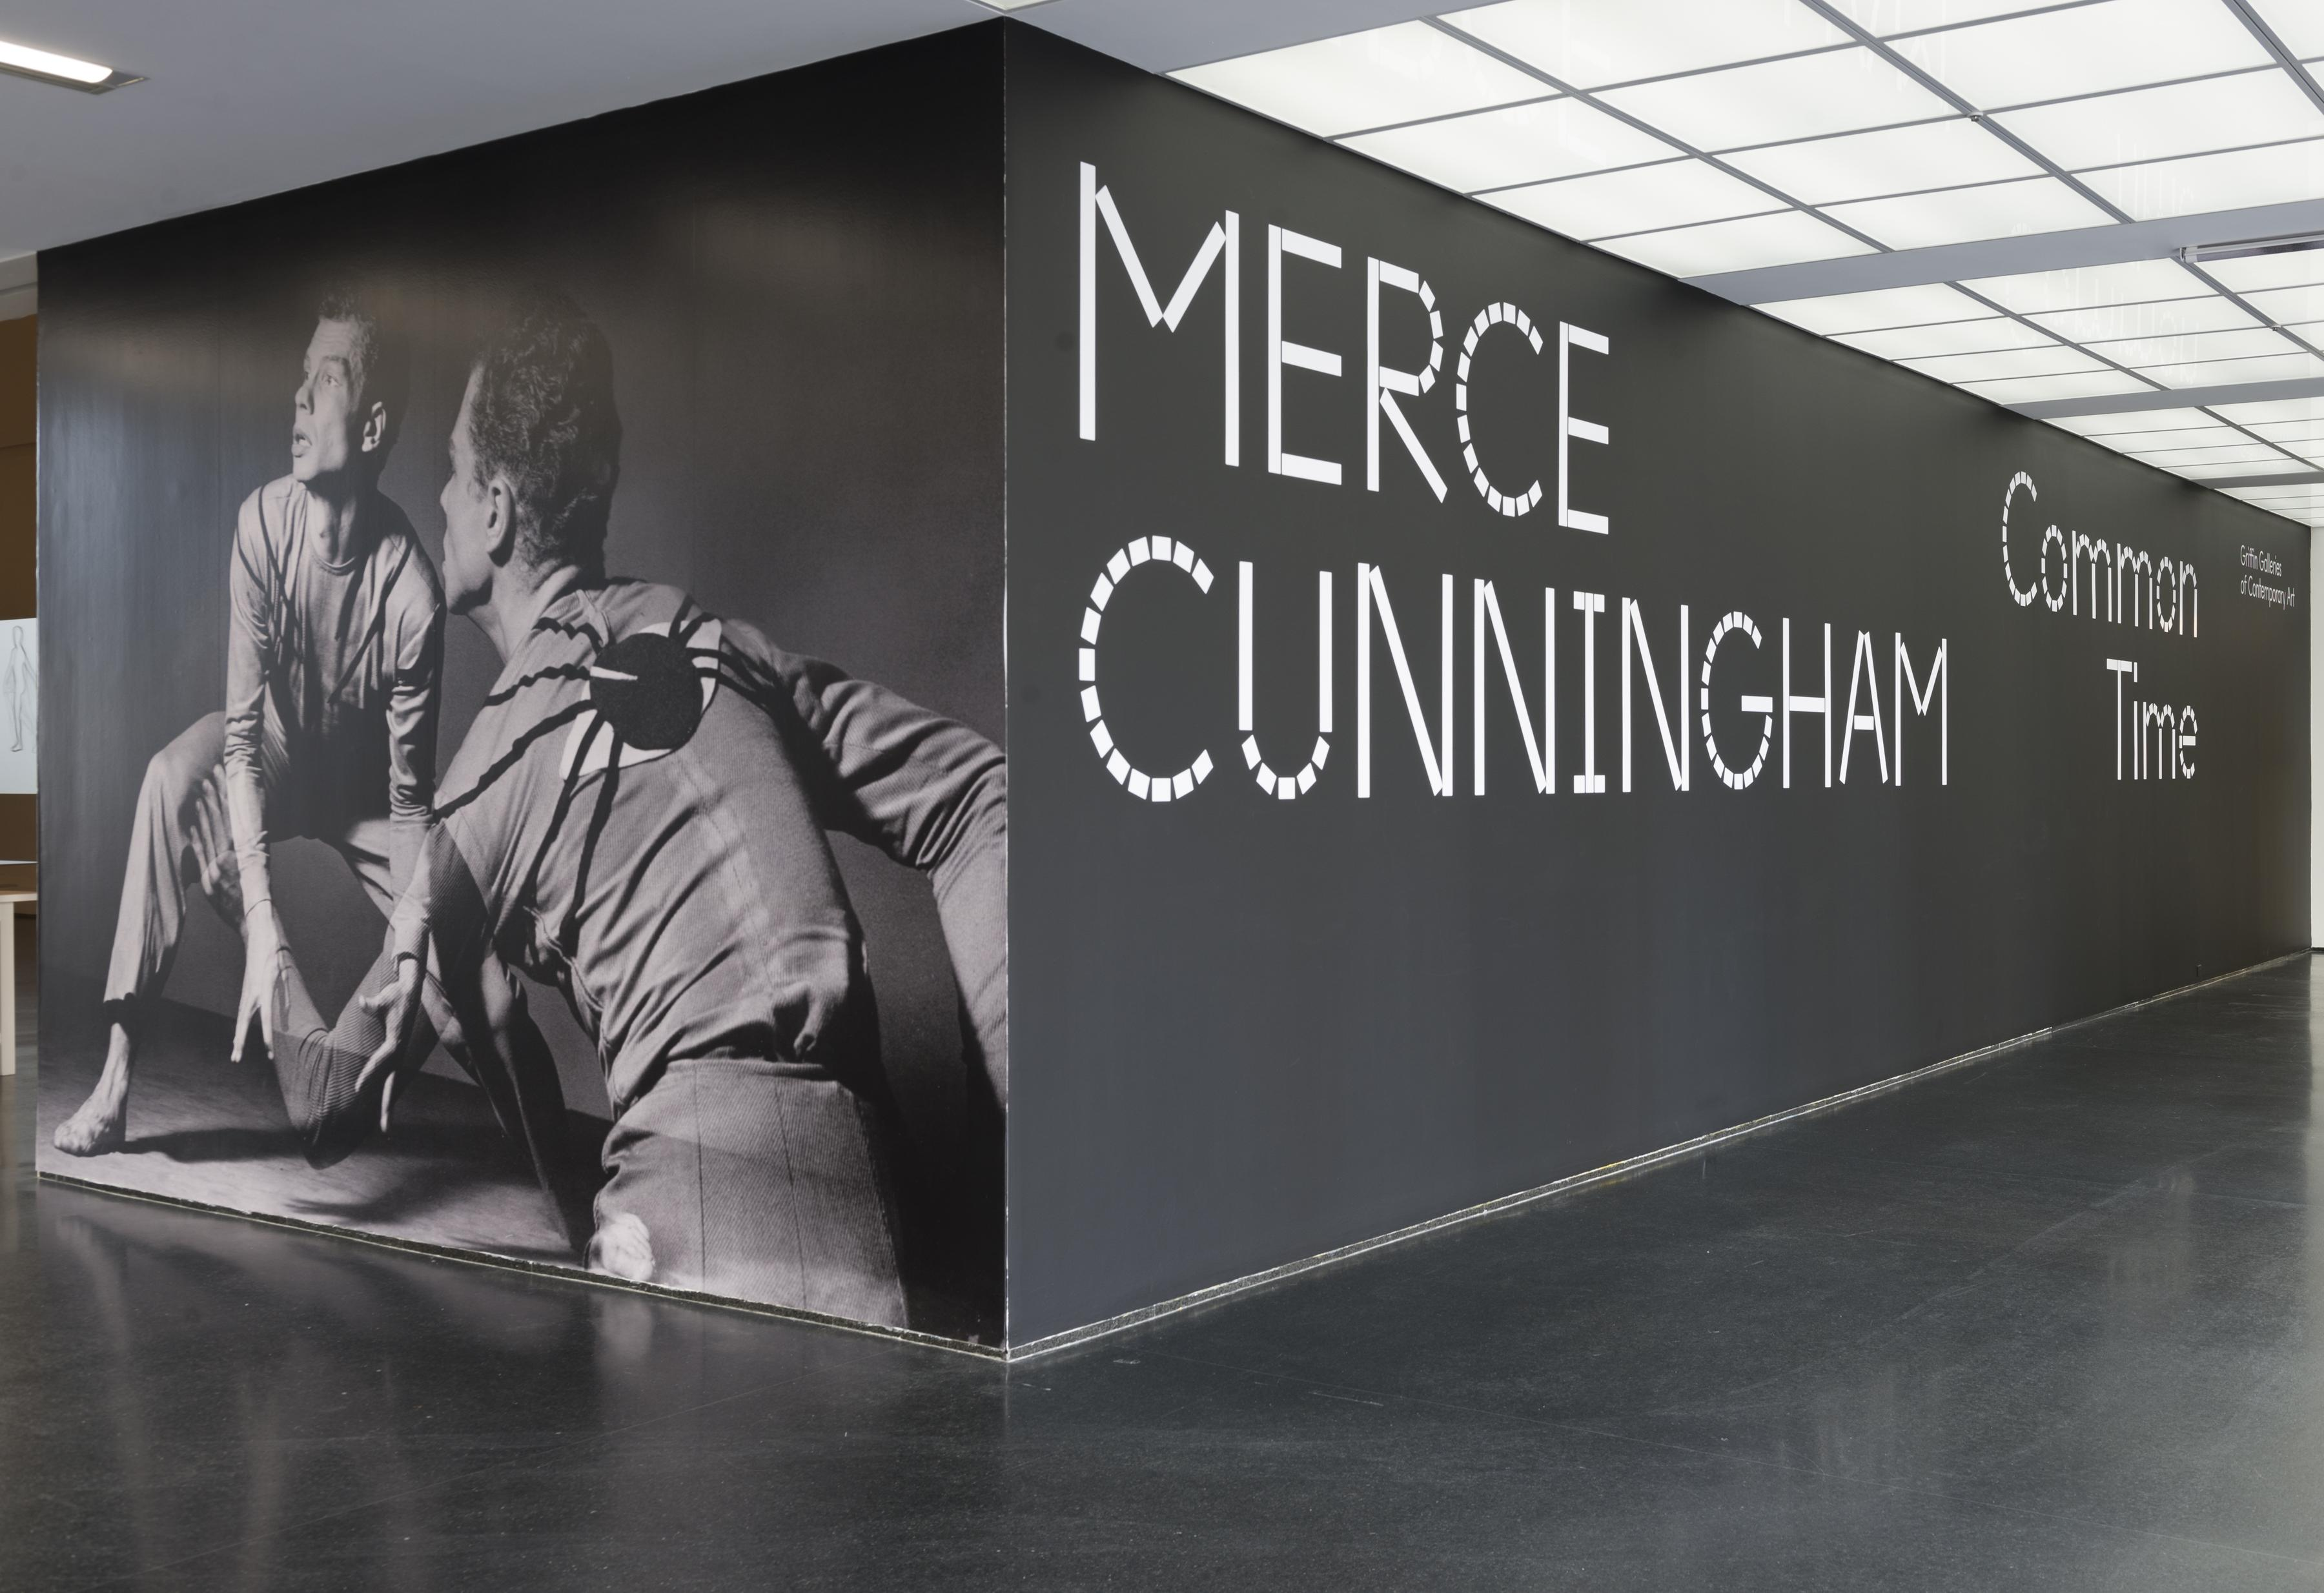 """A black-walled corner in a room features a floor-to-ceiling gray-scale image of a crouching man seen from the front and the back on the left wall, and large white letters on the adjacent black wall that read: """"MERCE CUNNINGHAM Common Time."""""""